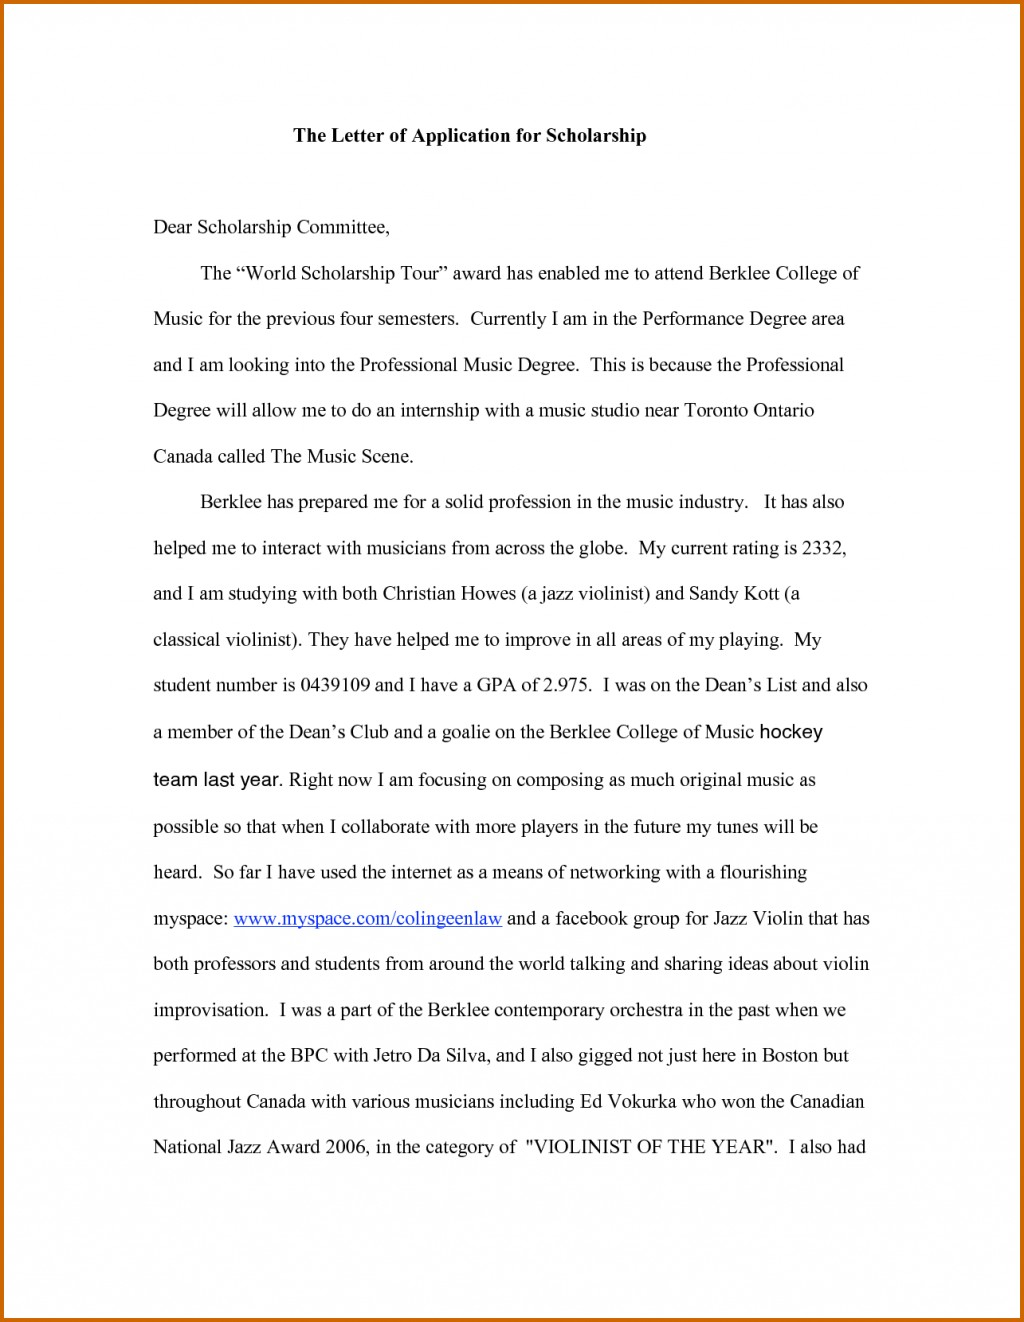 003 Scholarship Essay Sample About Why I Deserve The How To Write Application For Awesome Pdf Large